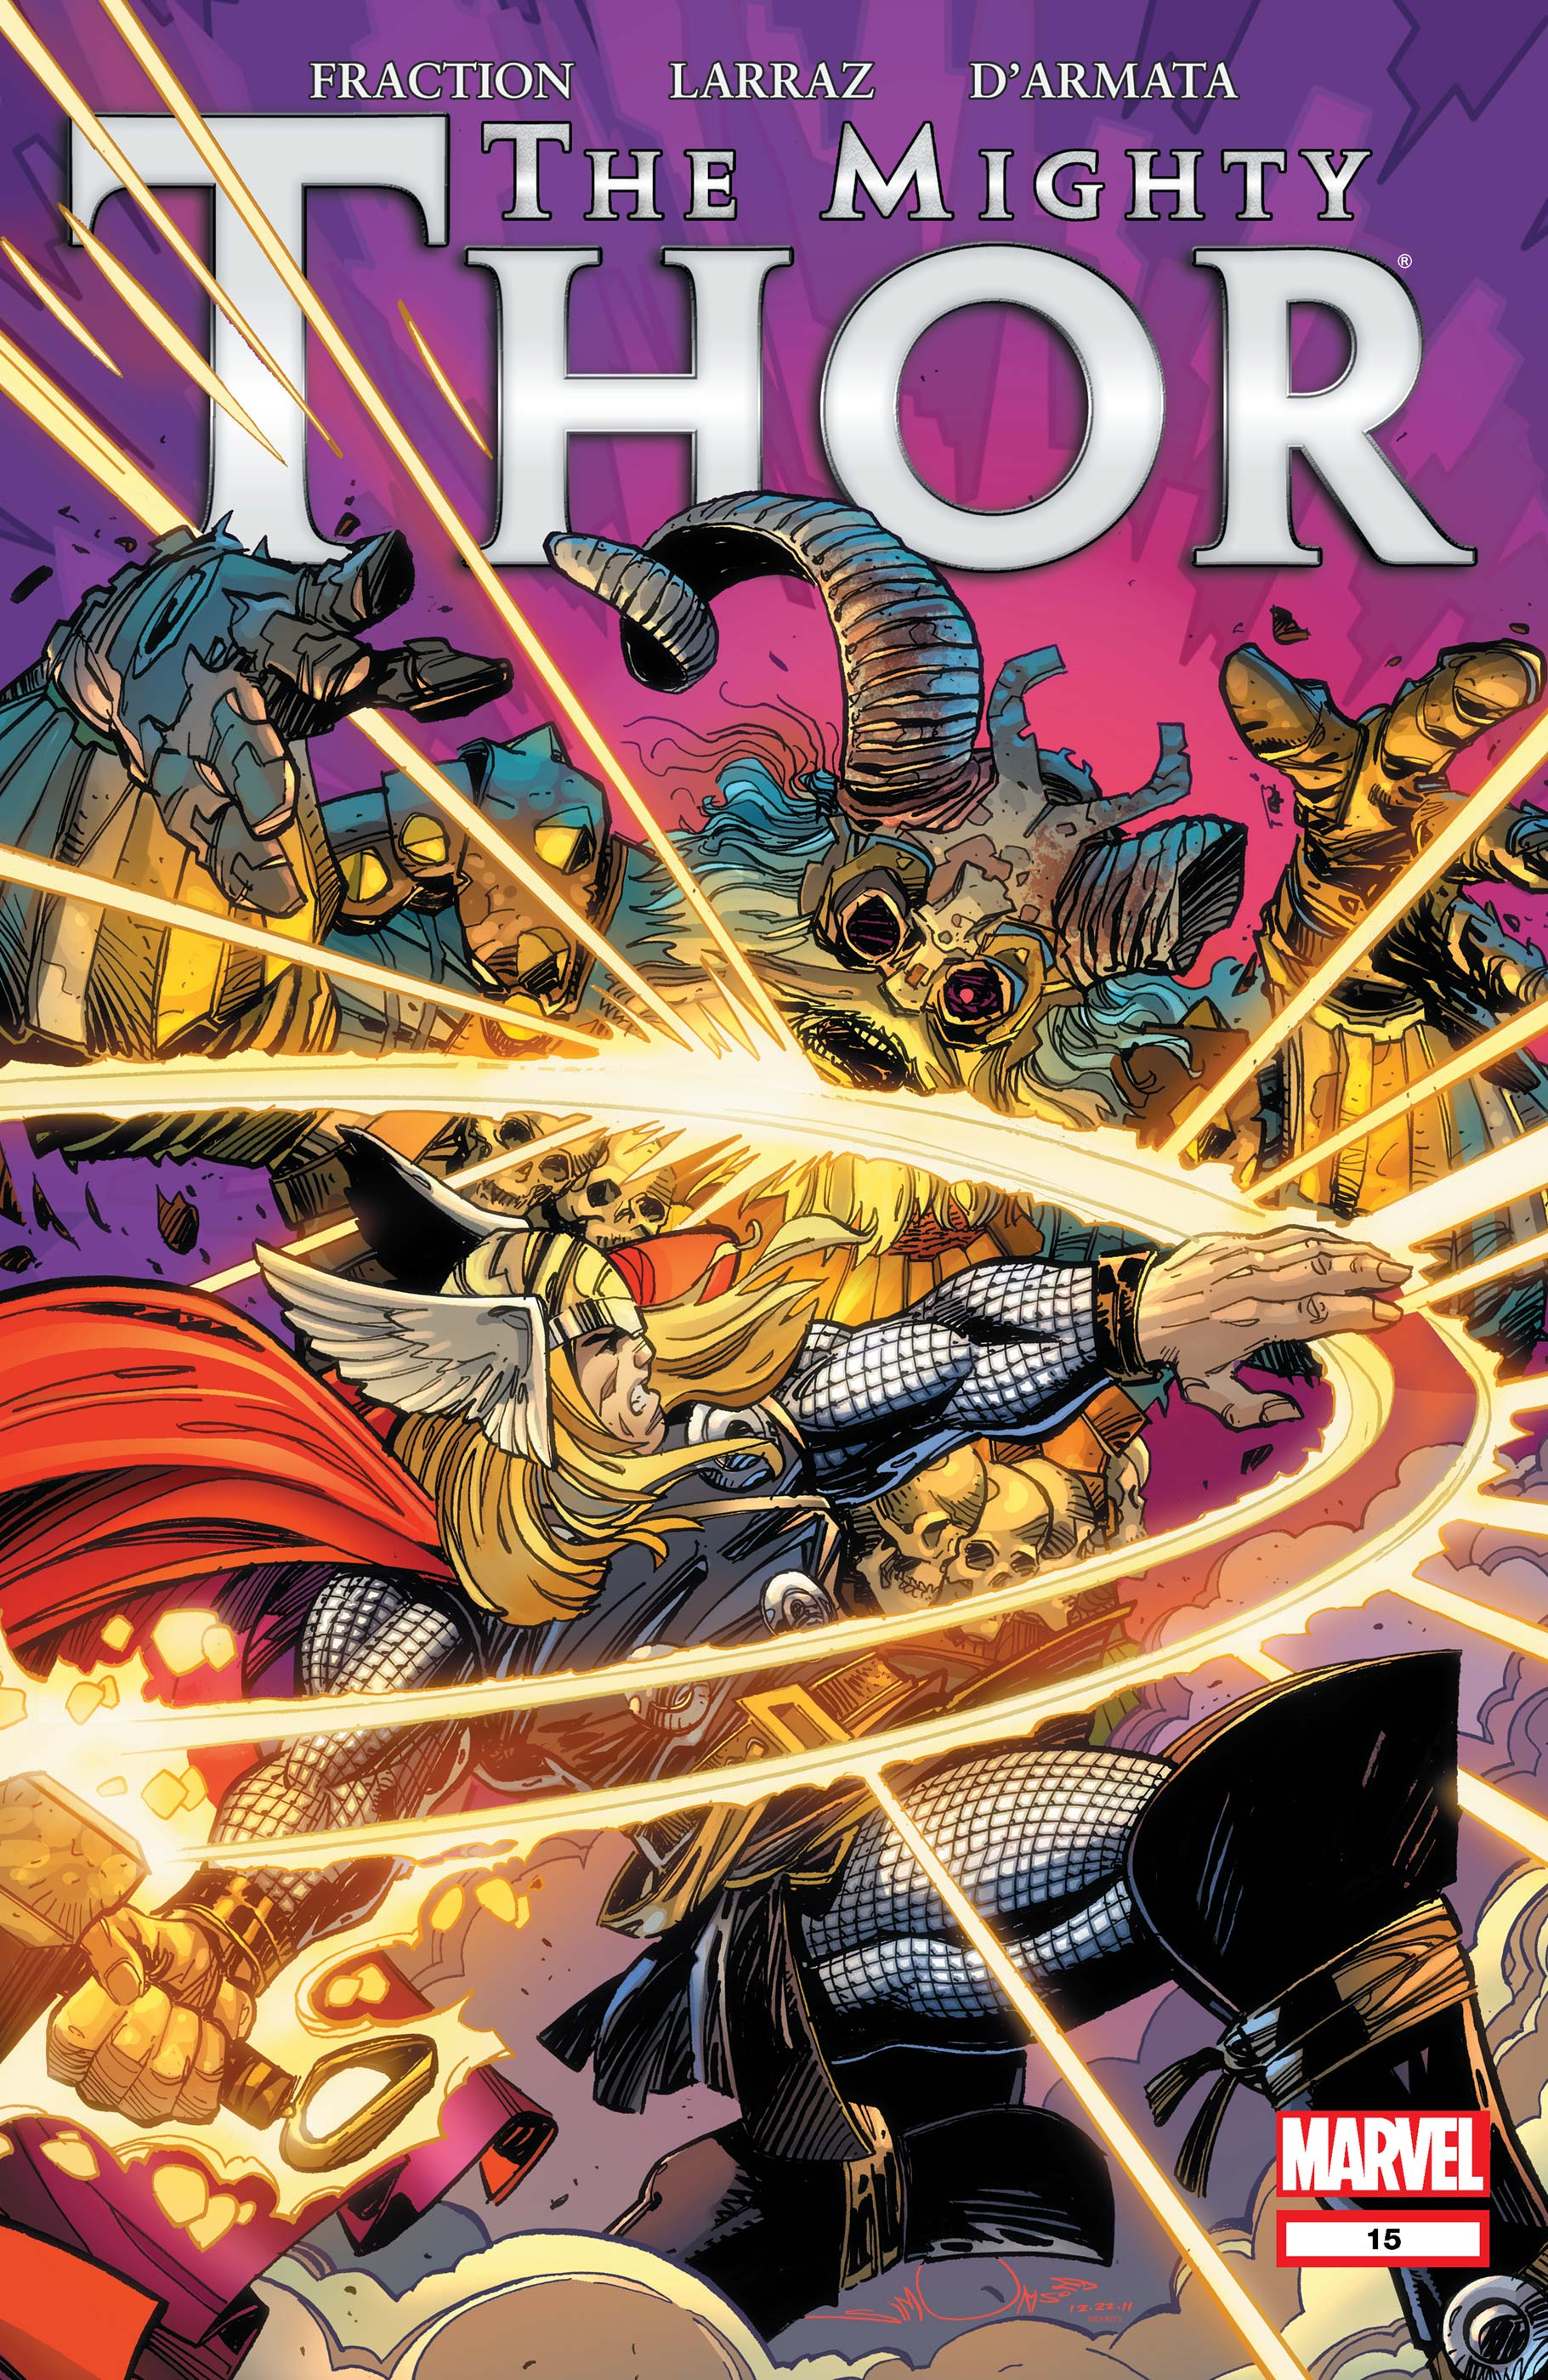 The Mighty Thor (2011) #15